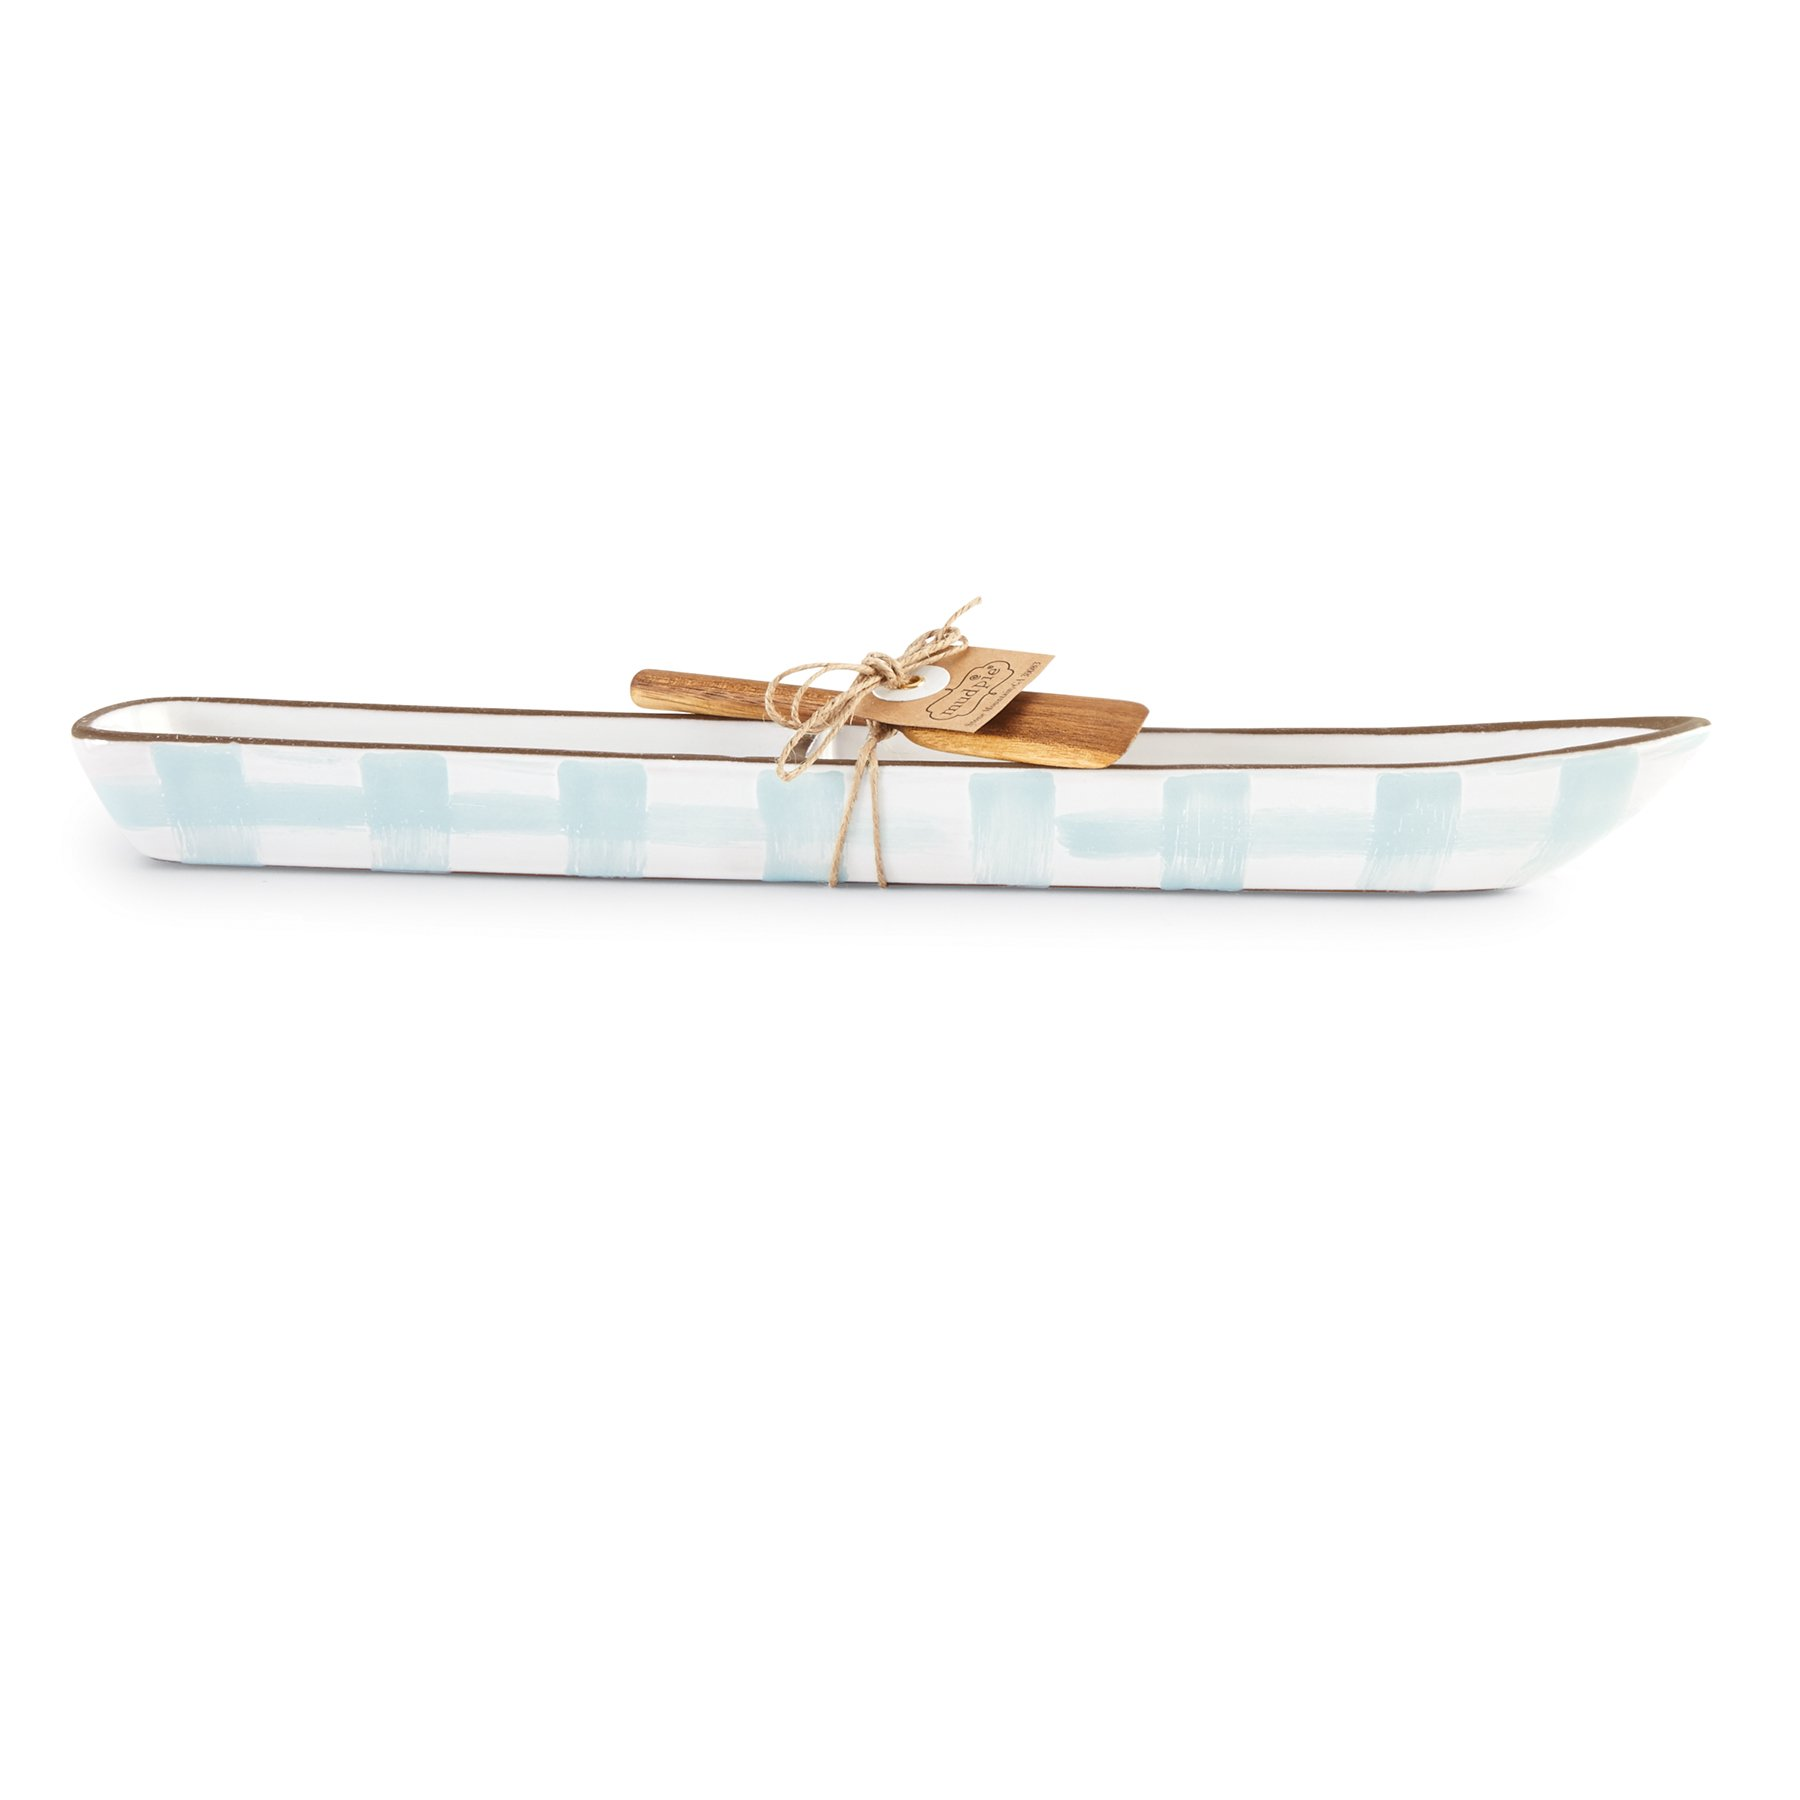 Mud Pie Canoe Shaped Section Cracker Dish Set, Blue by Mud Pie (Image #2)